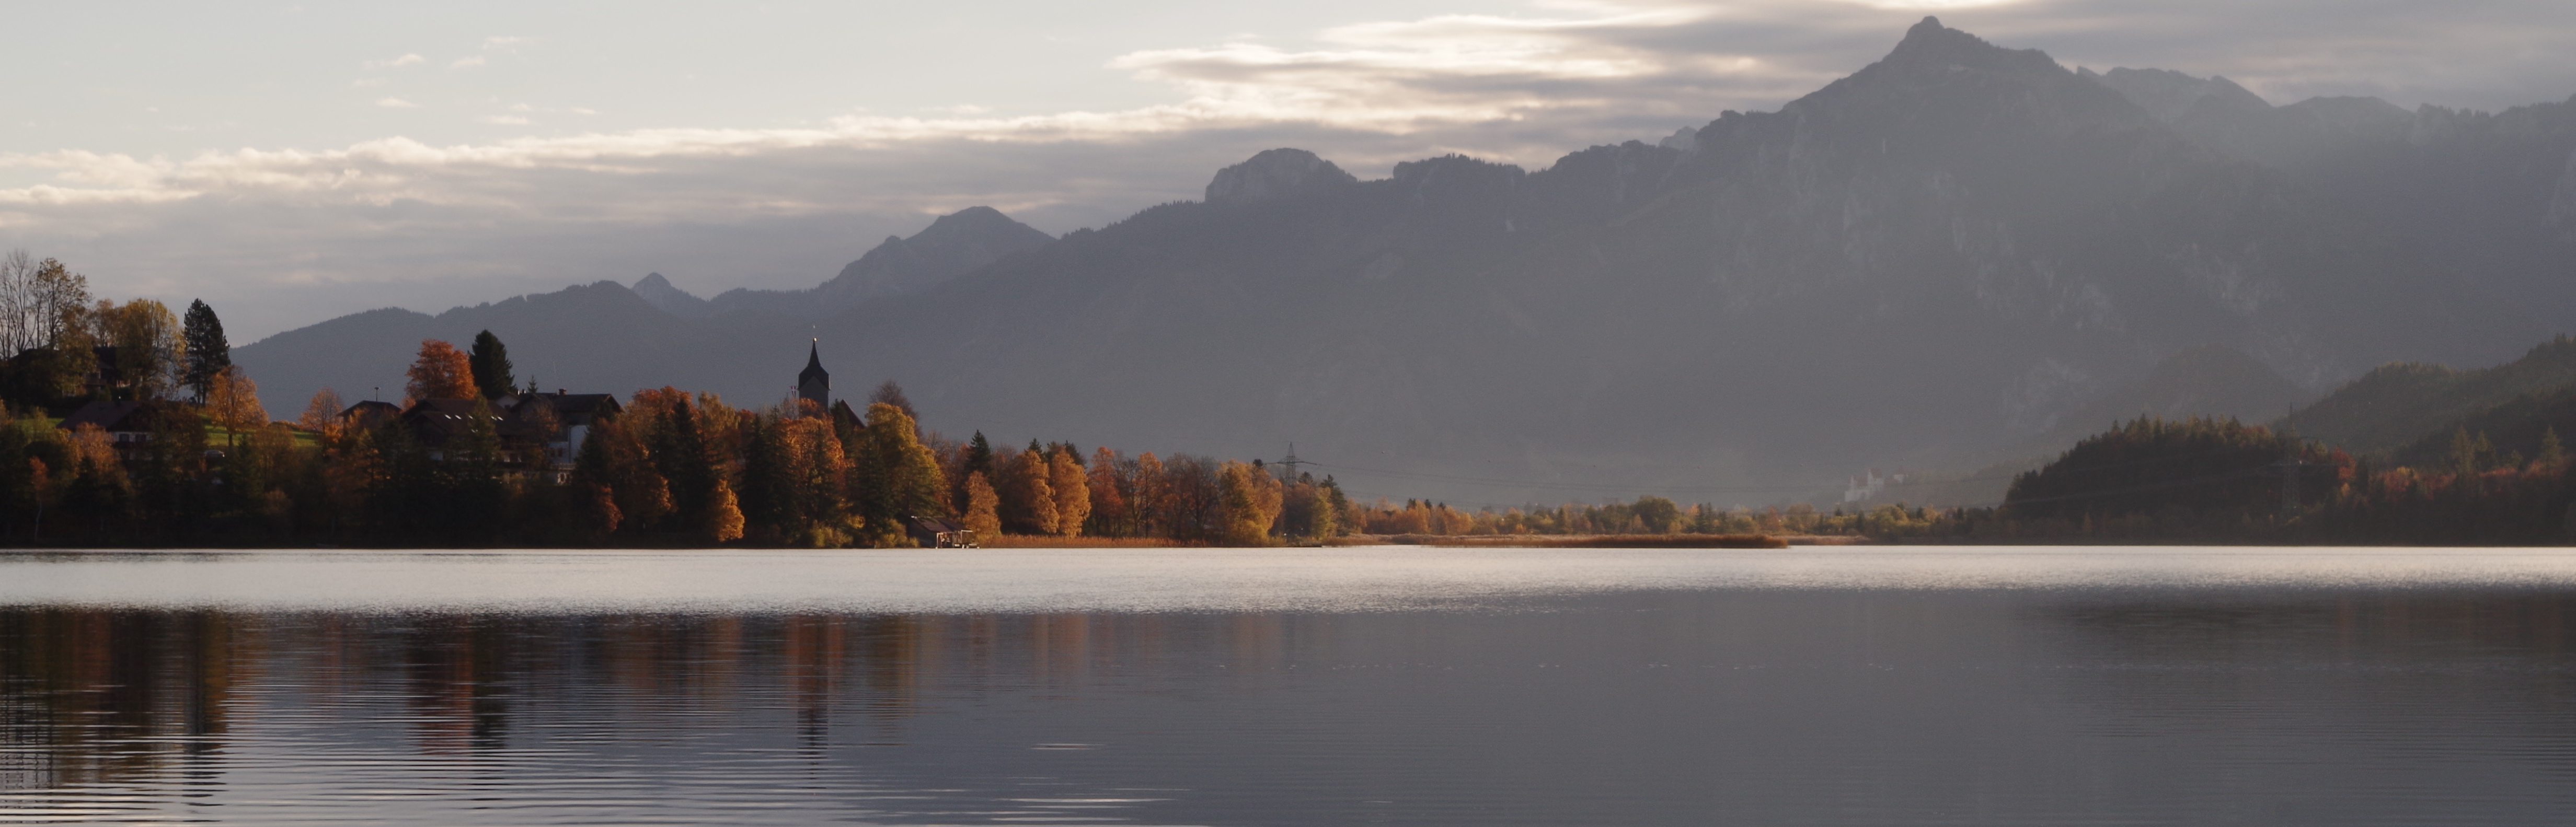 Indian Summer am Weissensee